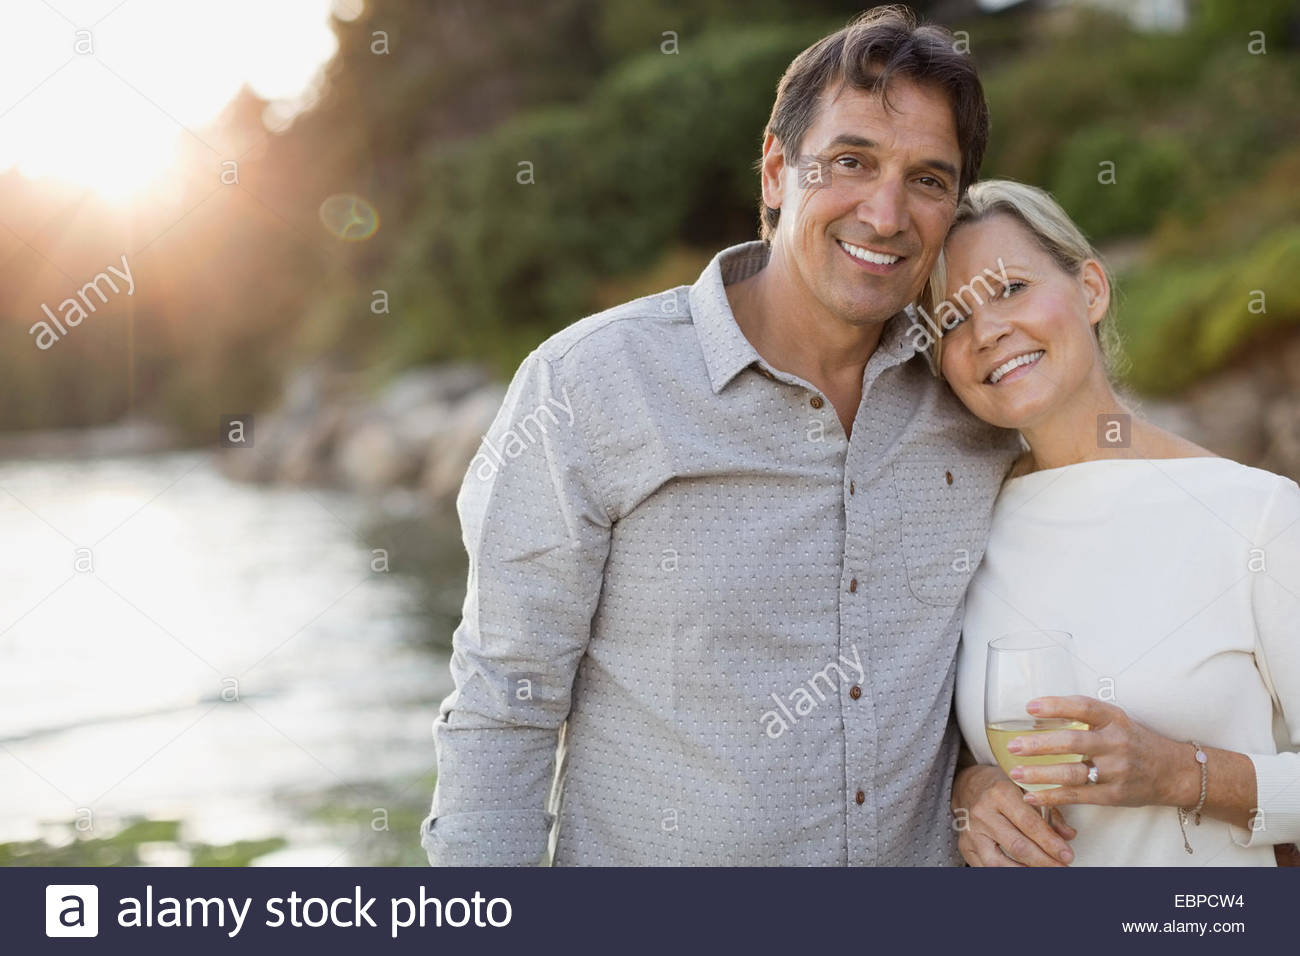 Portrait of smiling couple on beach - Stock Image